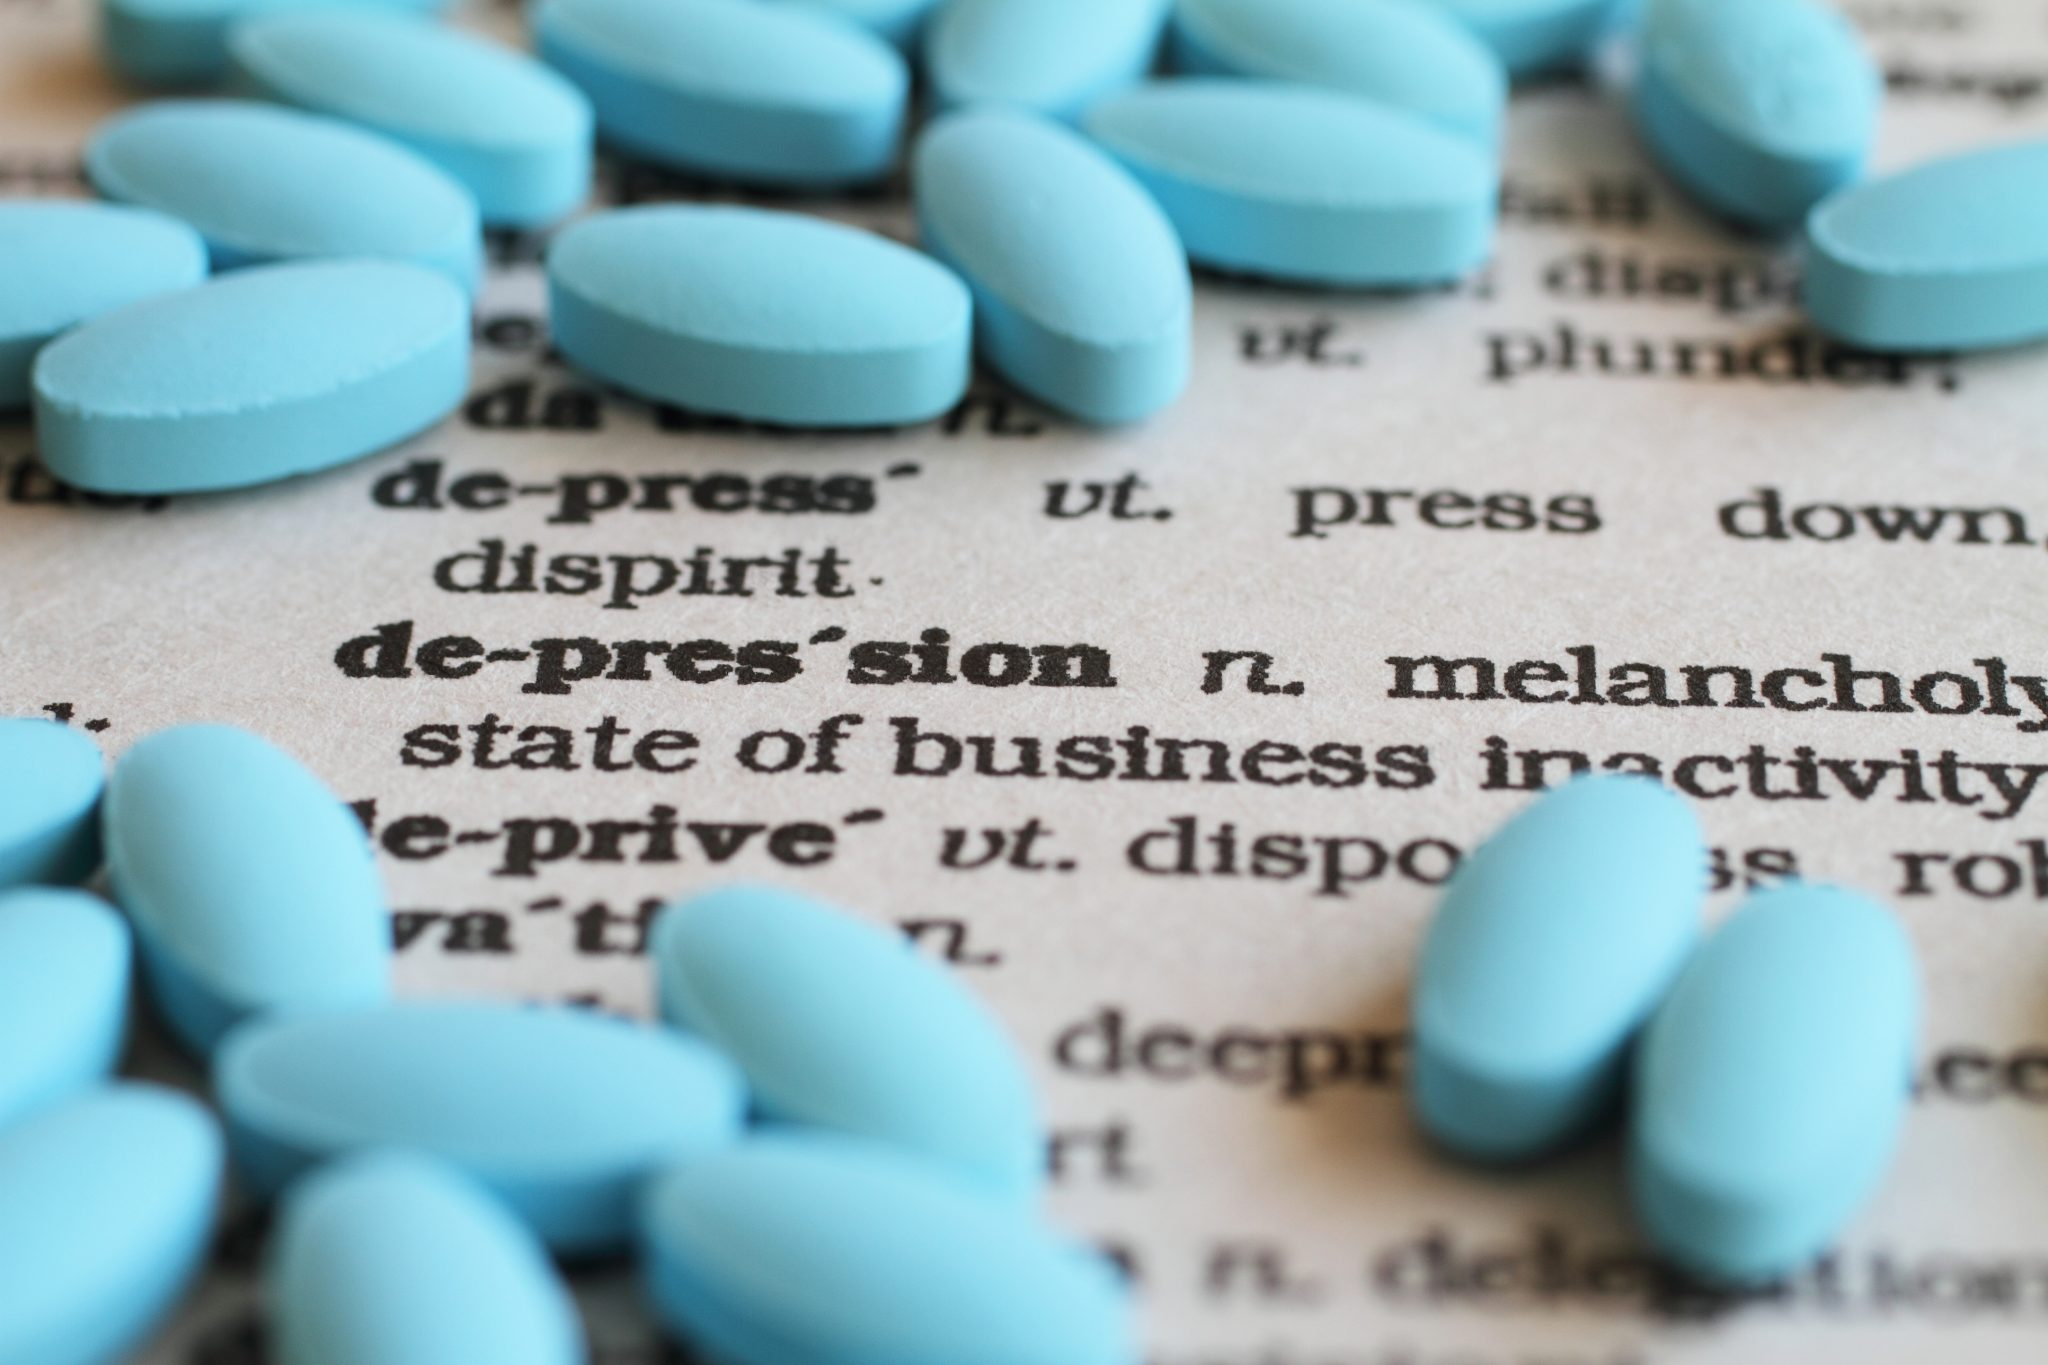 Why I started taking antidepressants after years of depression